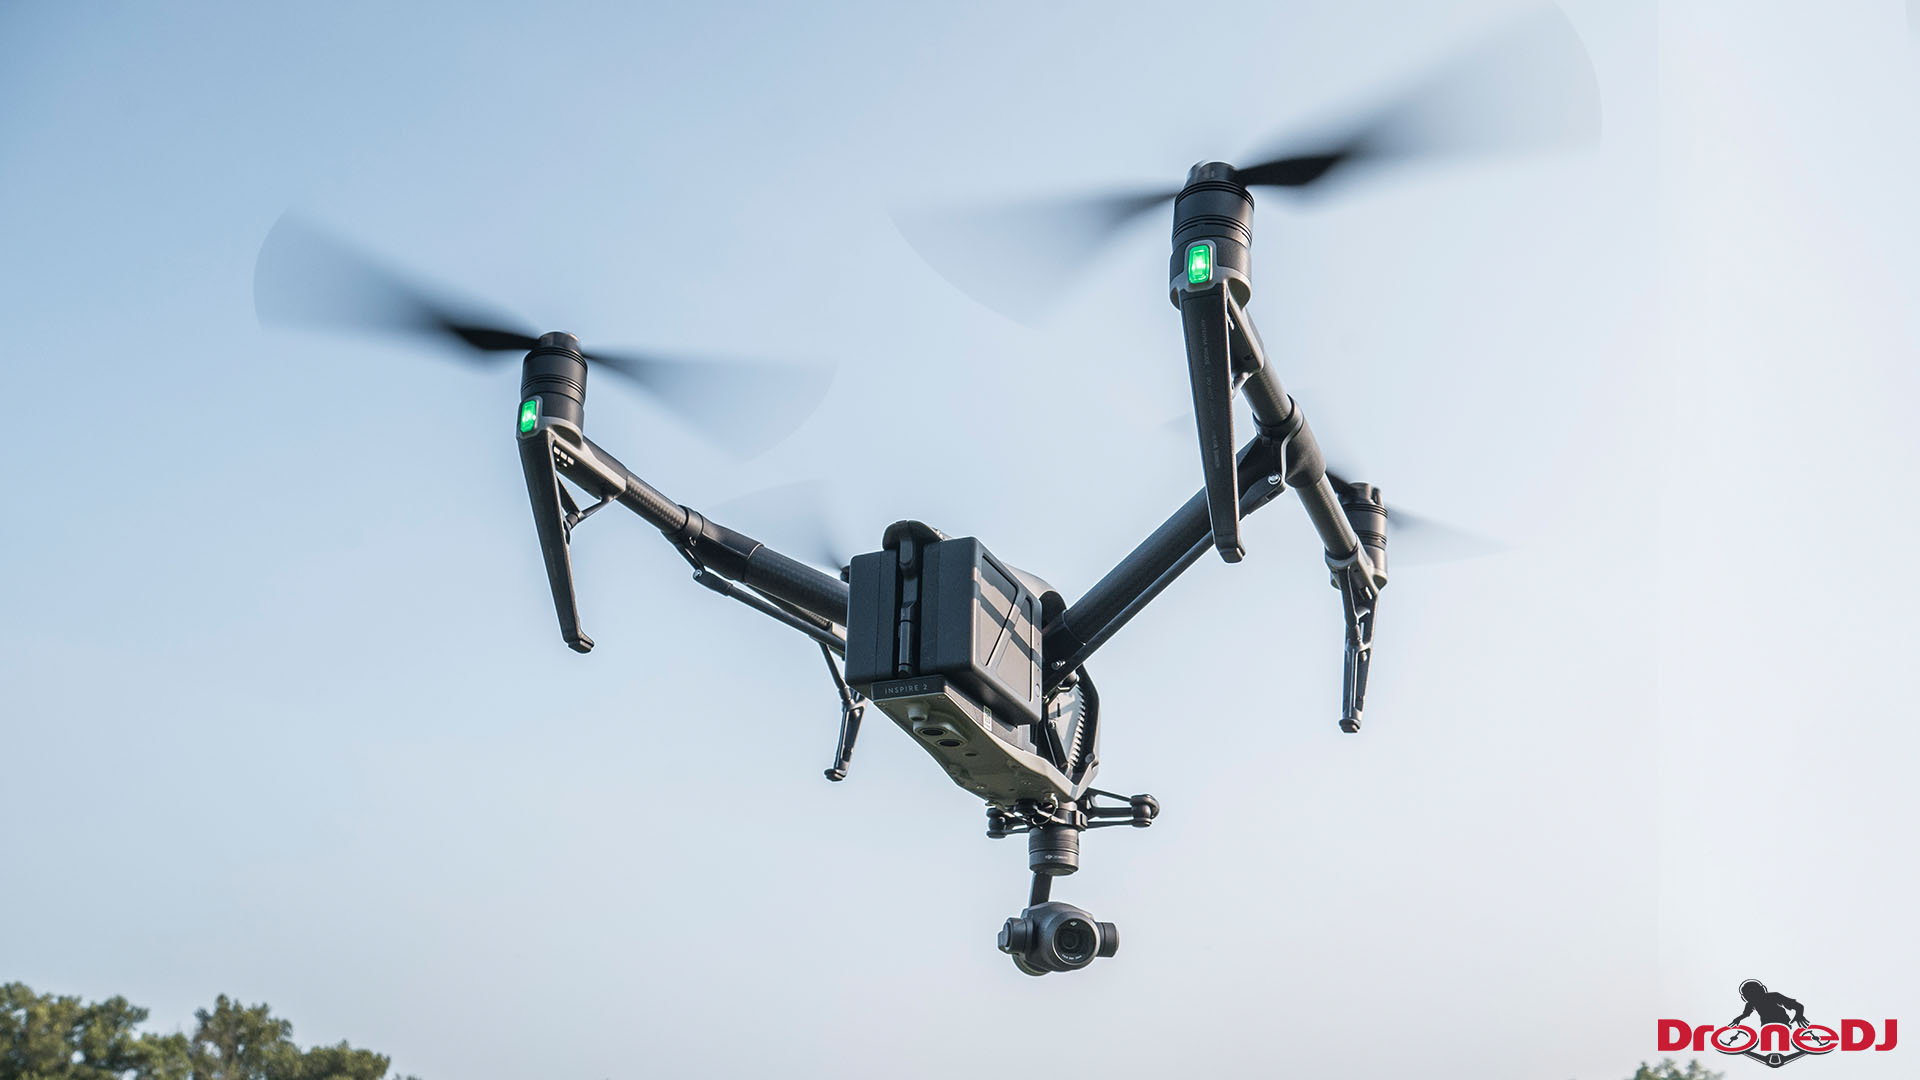 DroneDJ Review: The DJI Inspire 2 is the king of the sky